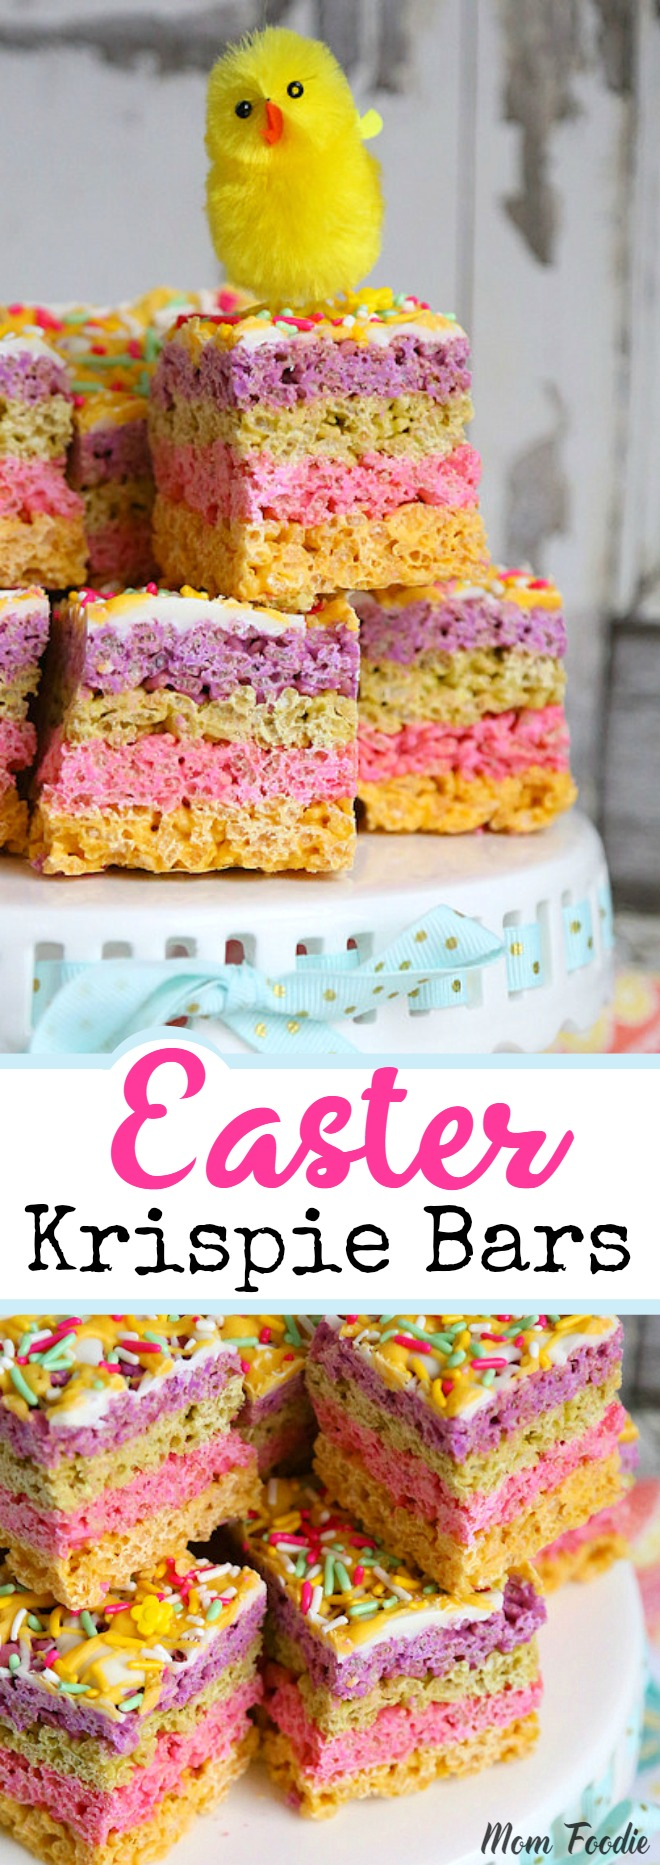 Easter Rice Krispie Treats - Striped Pastel Chocolate Krispie bars